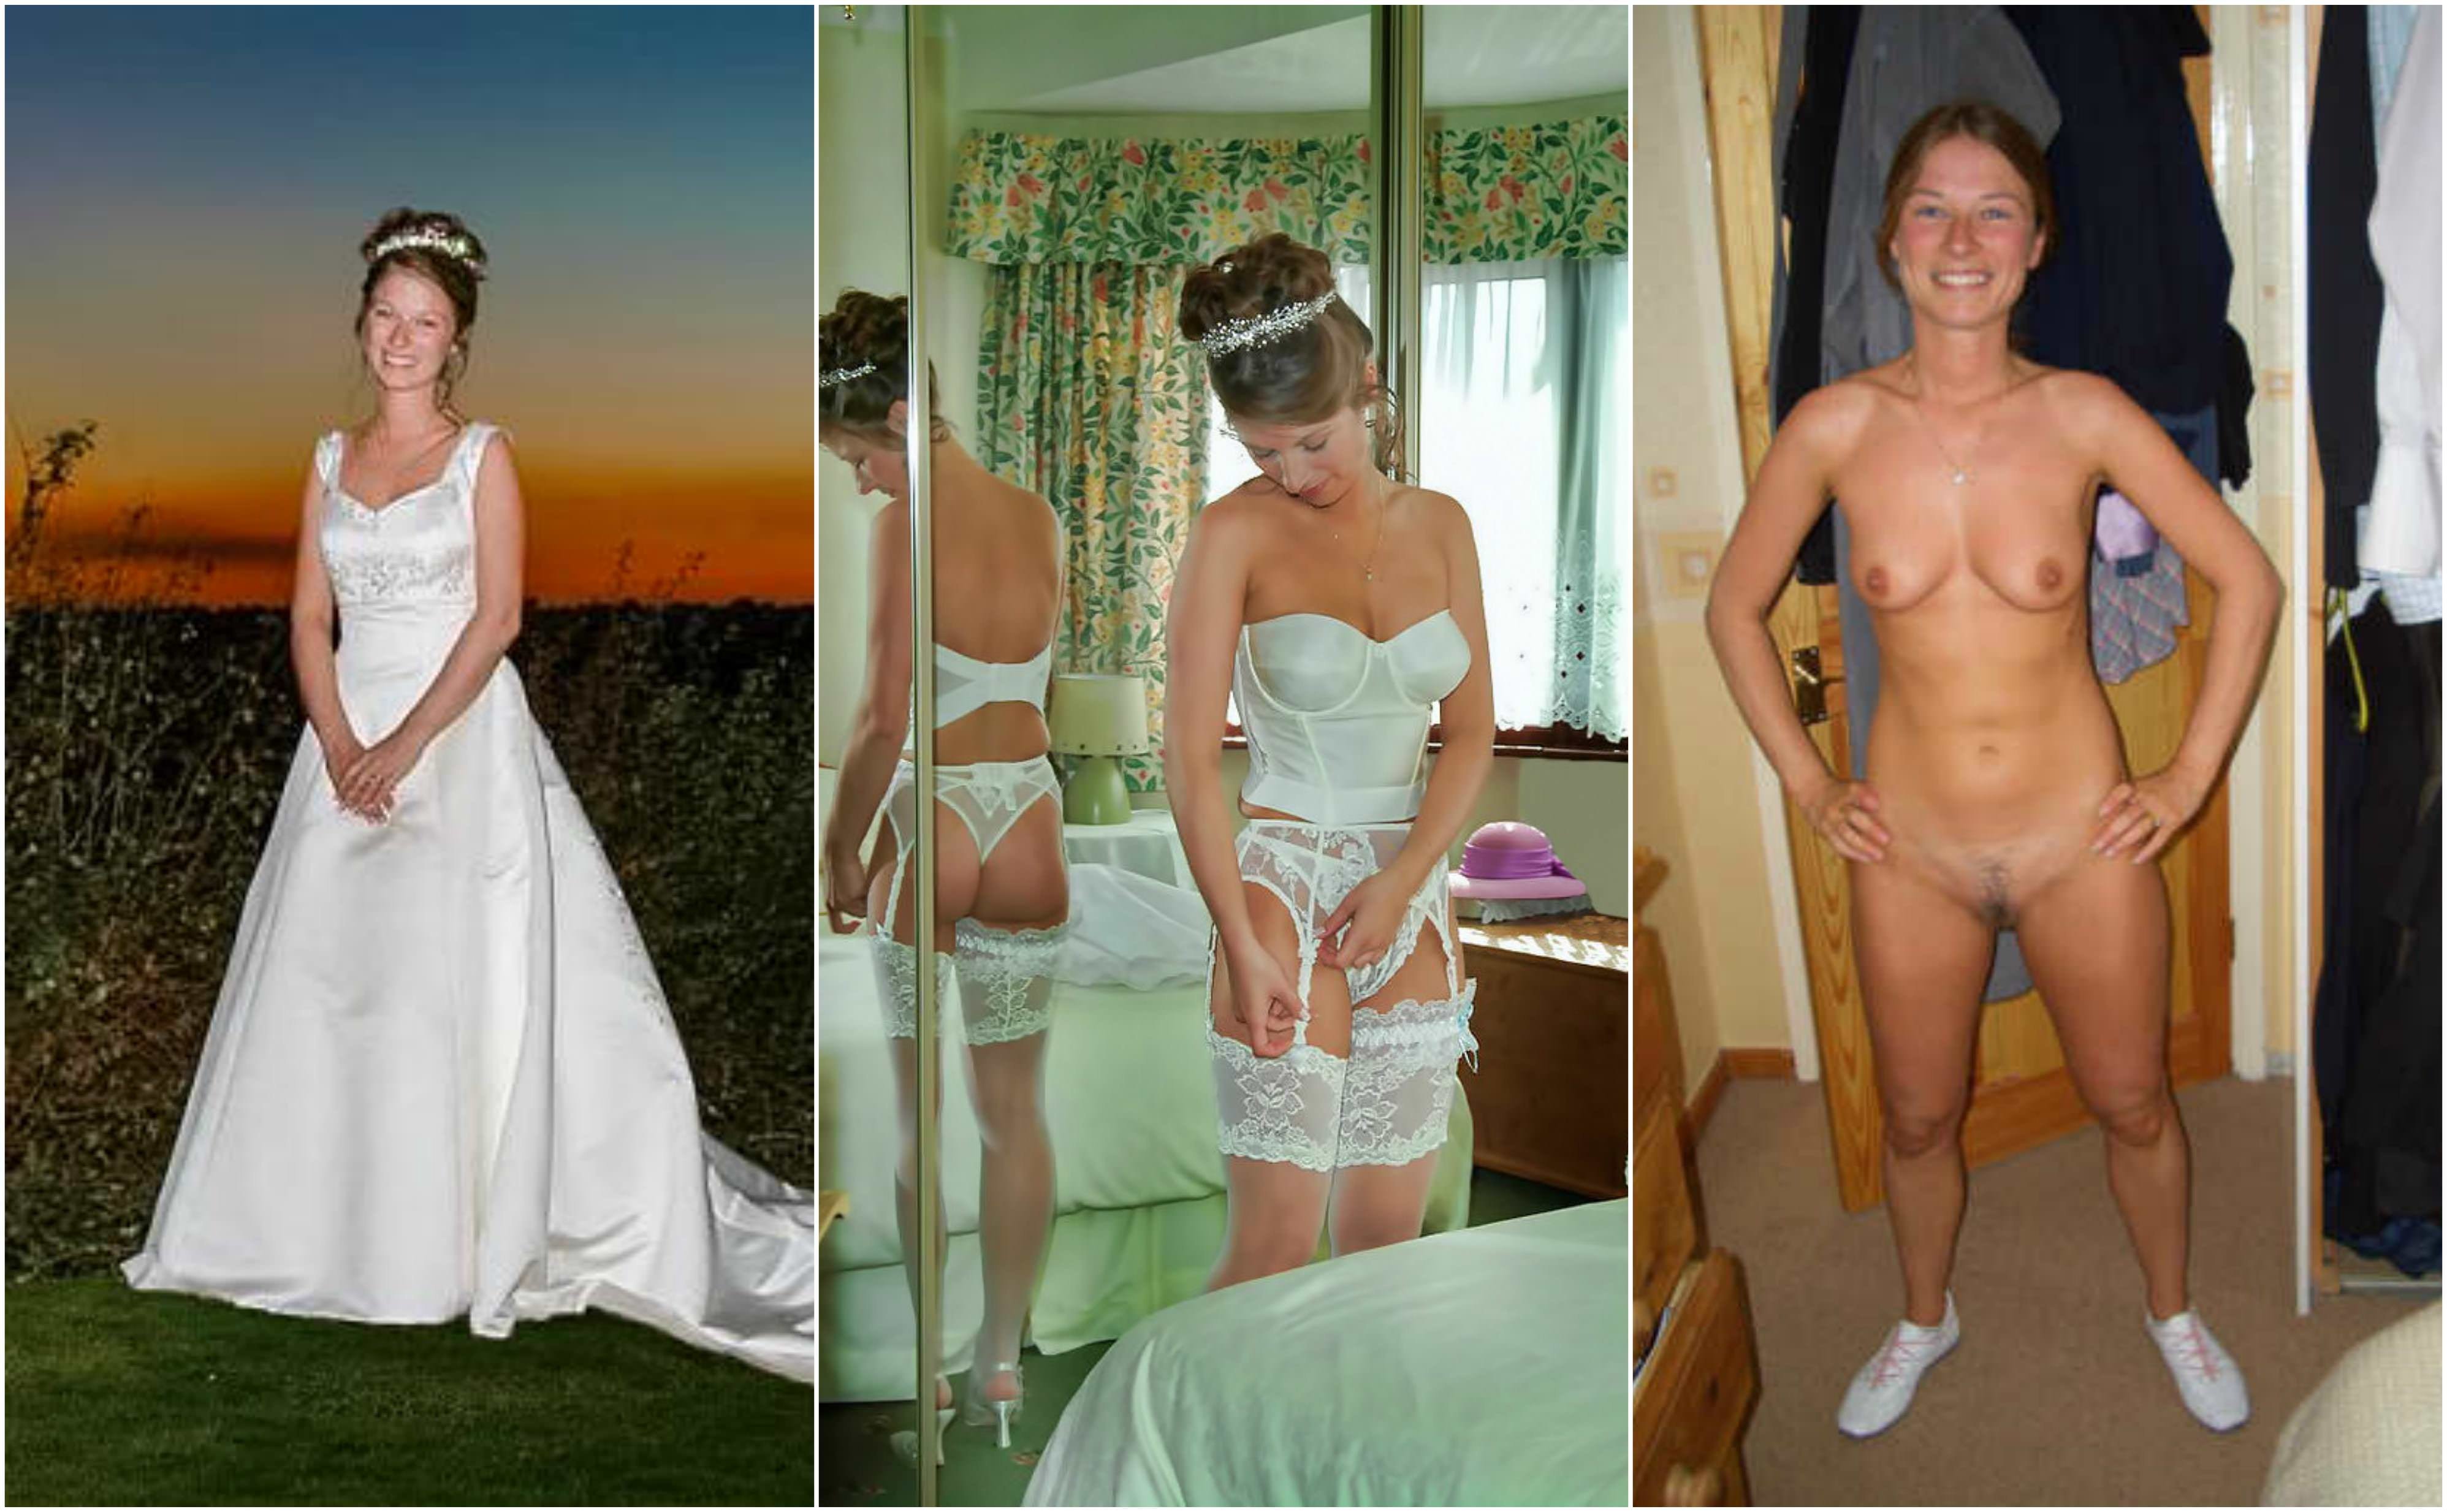 Wife Gets Naked